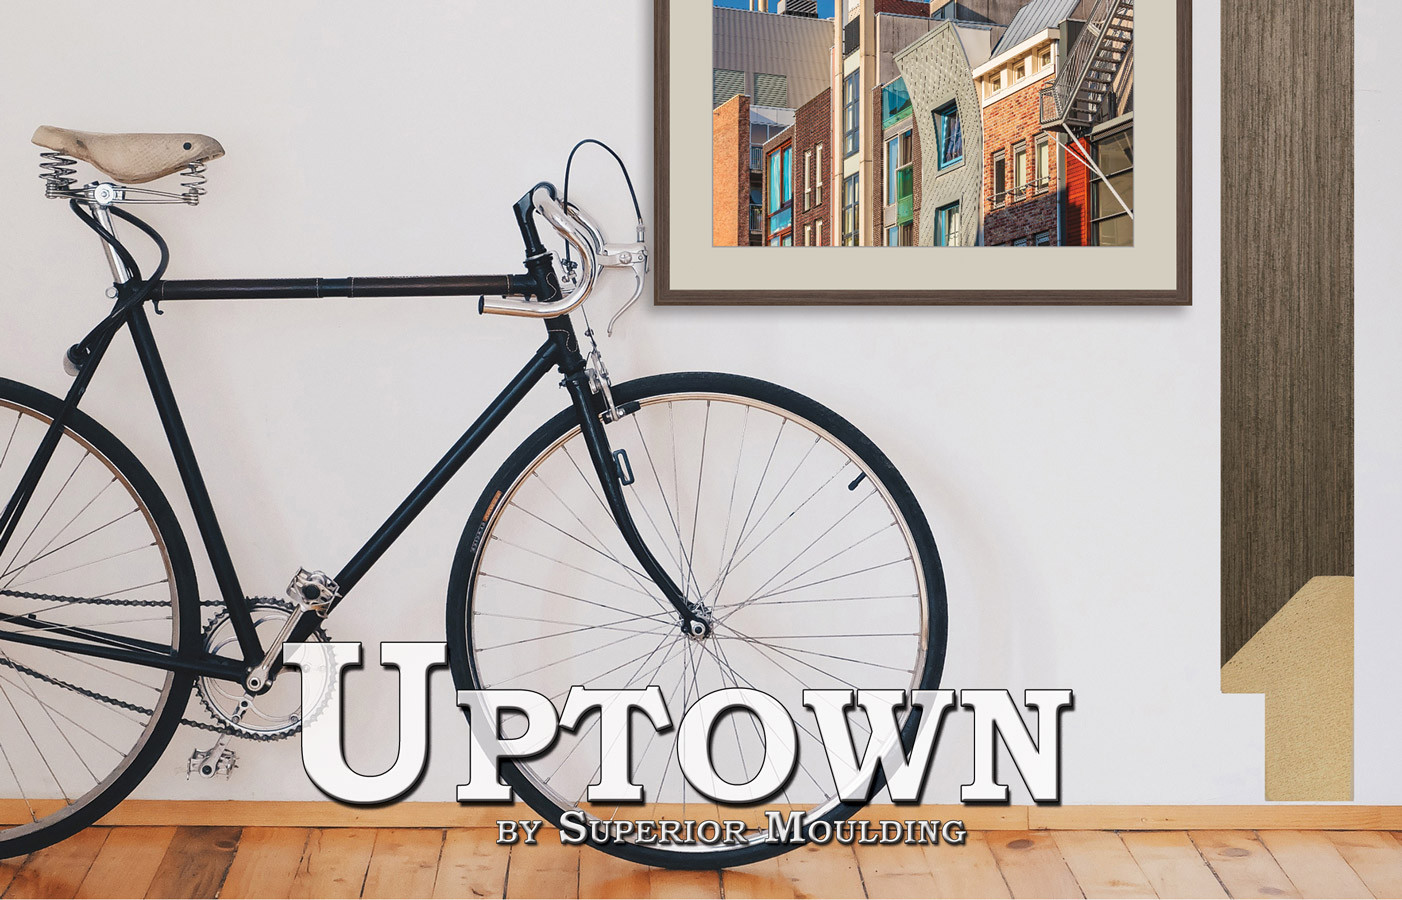 Uptown Moulding